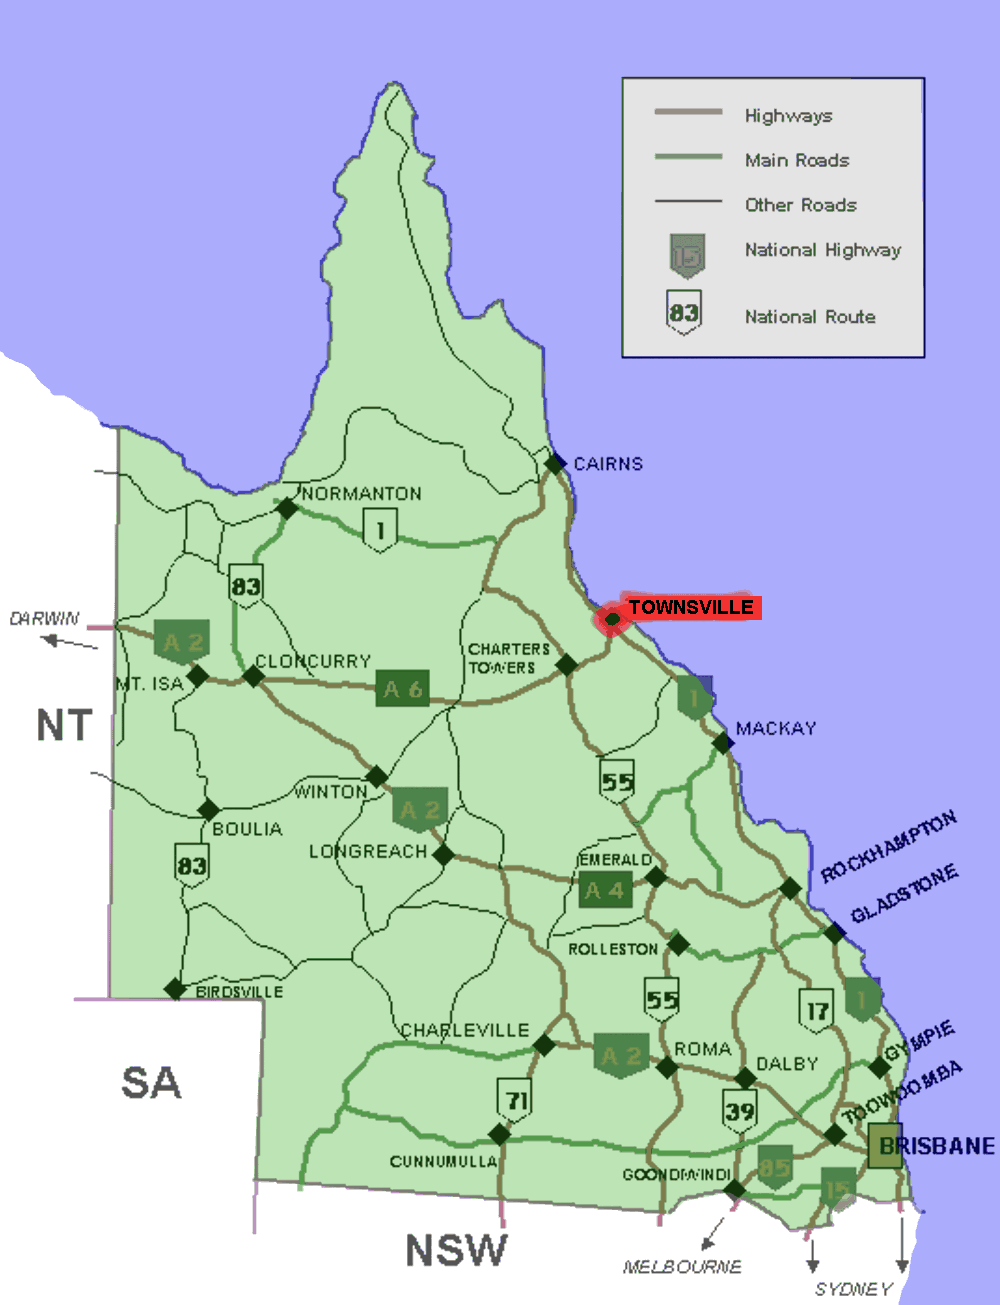 an overview of the brisbane media map database View maps, data and imagery of queensland using our online interactive tool   queensland, australia and brisbane region maps.